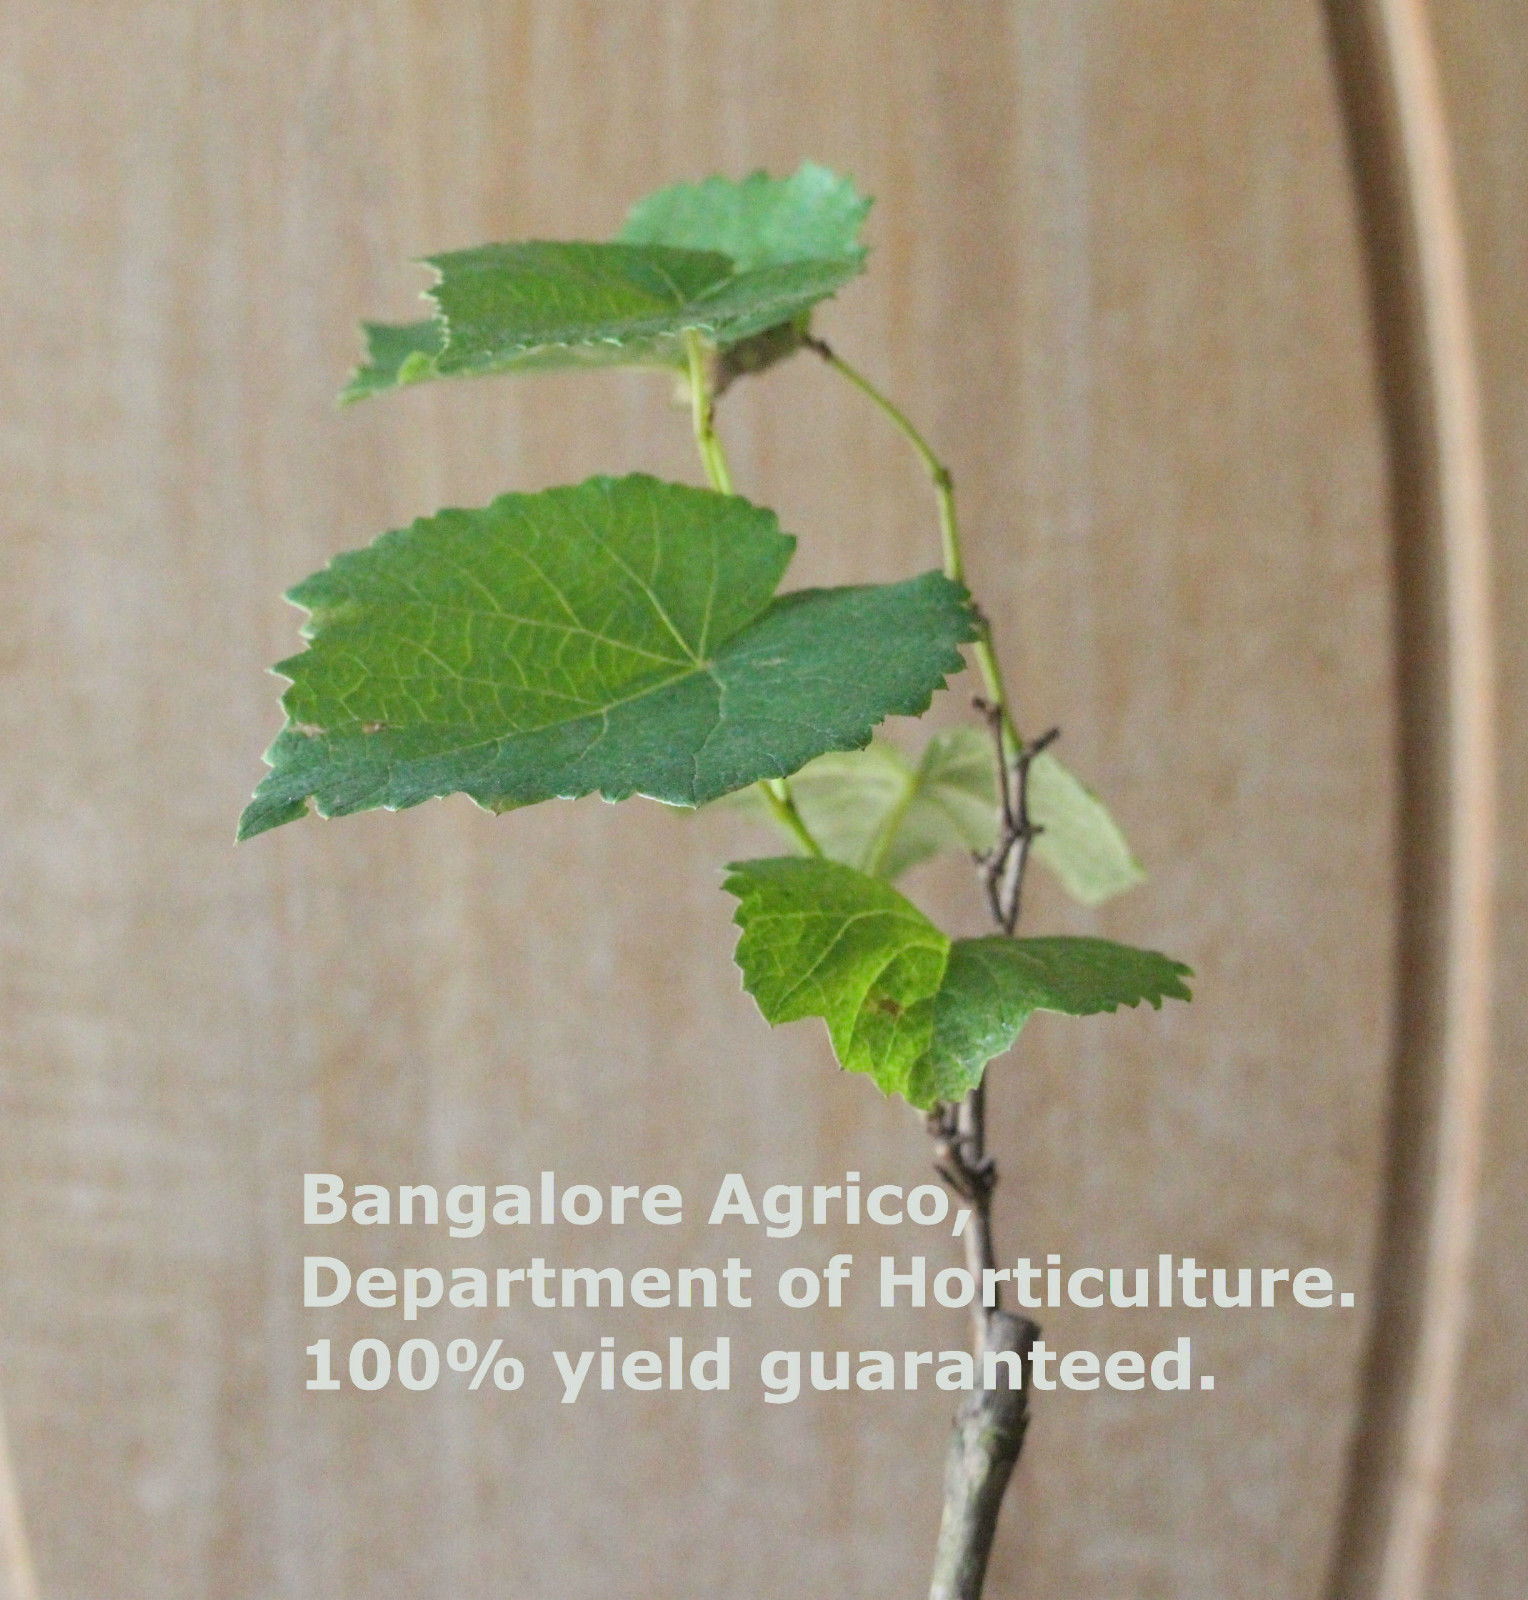 bangaloreagrico-grape